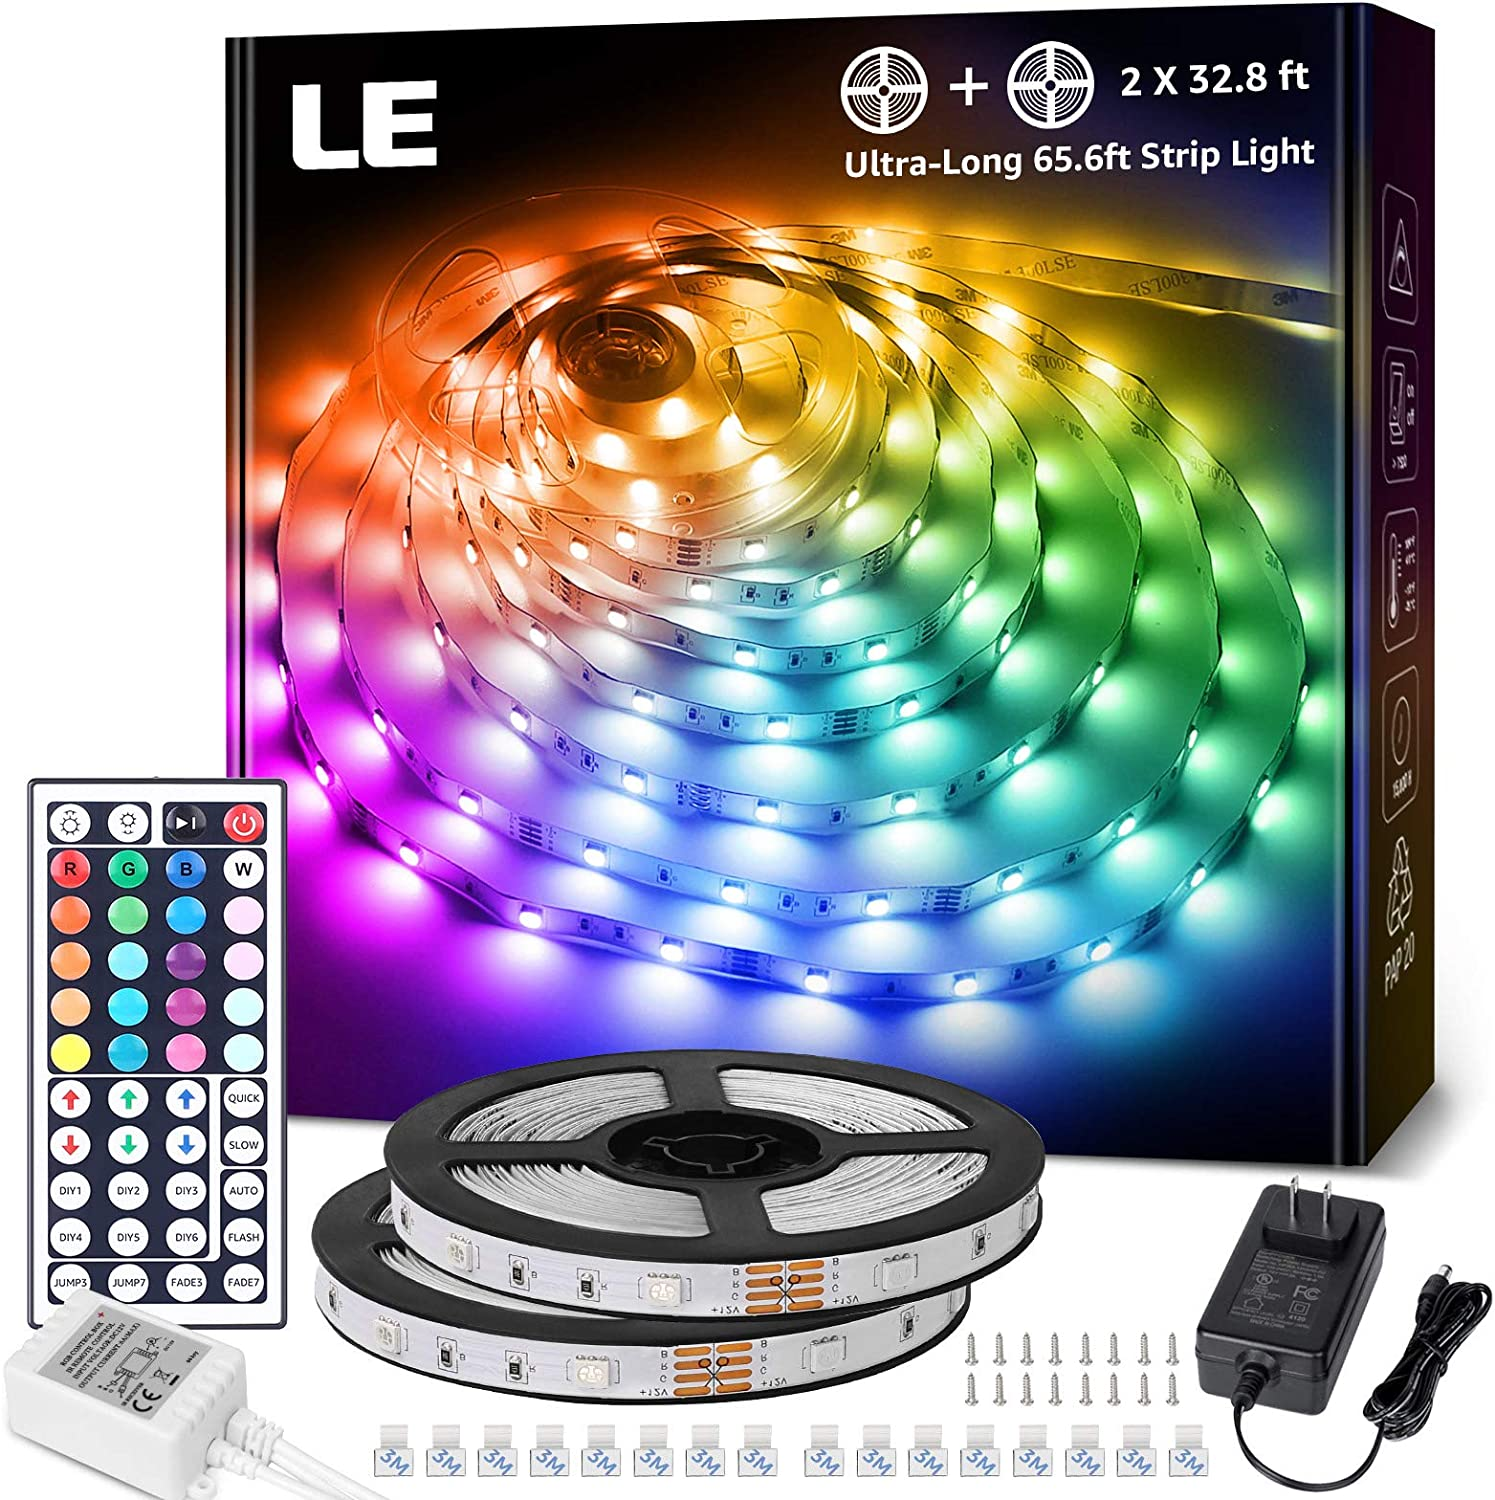 LE 65.6ft LED Strip Lights 5050 Strips Arlington Mall 5 ☆ very popular Ultra-Long RGB with